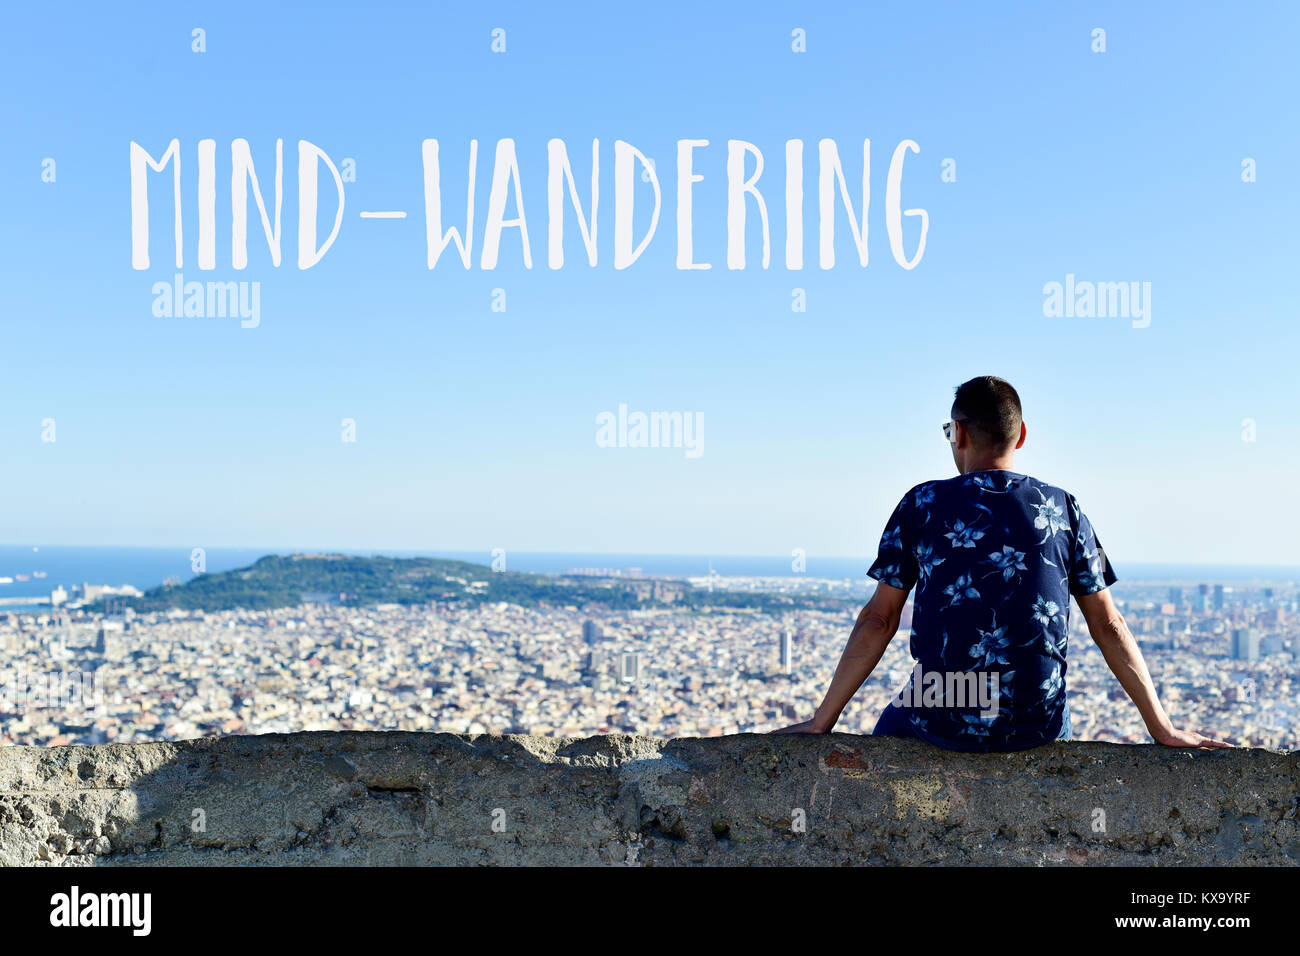 the text mind-wandering and a young caucasian man, seen from behind, at the top of a hill observing the city and - Stock Image